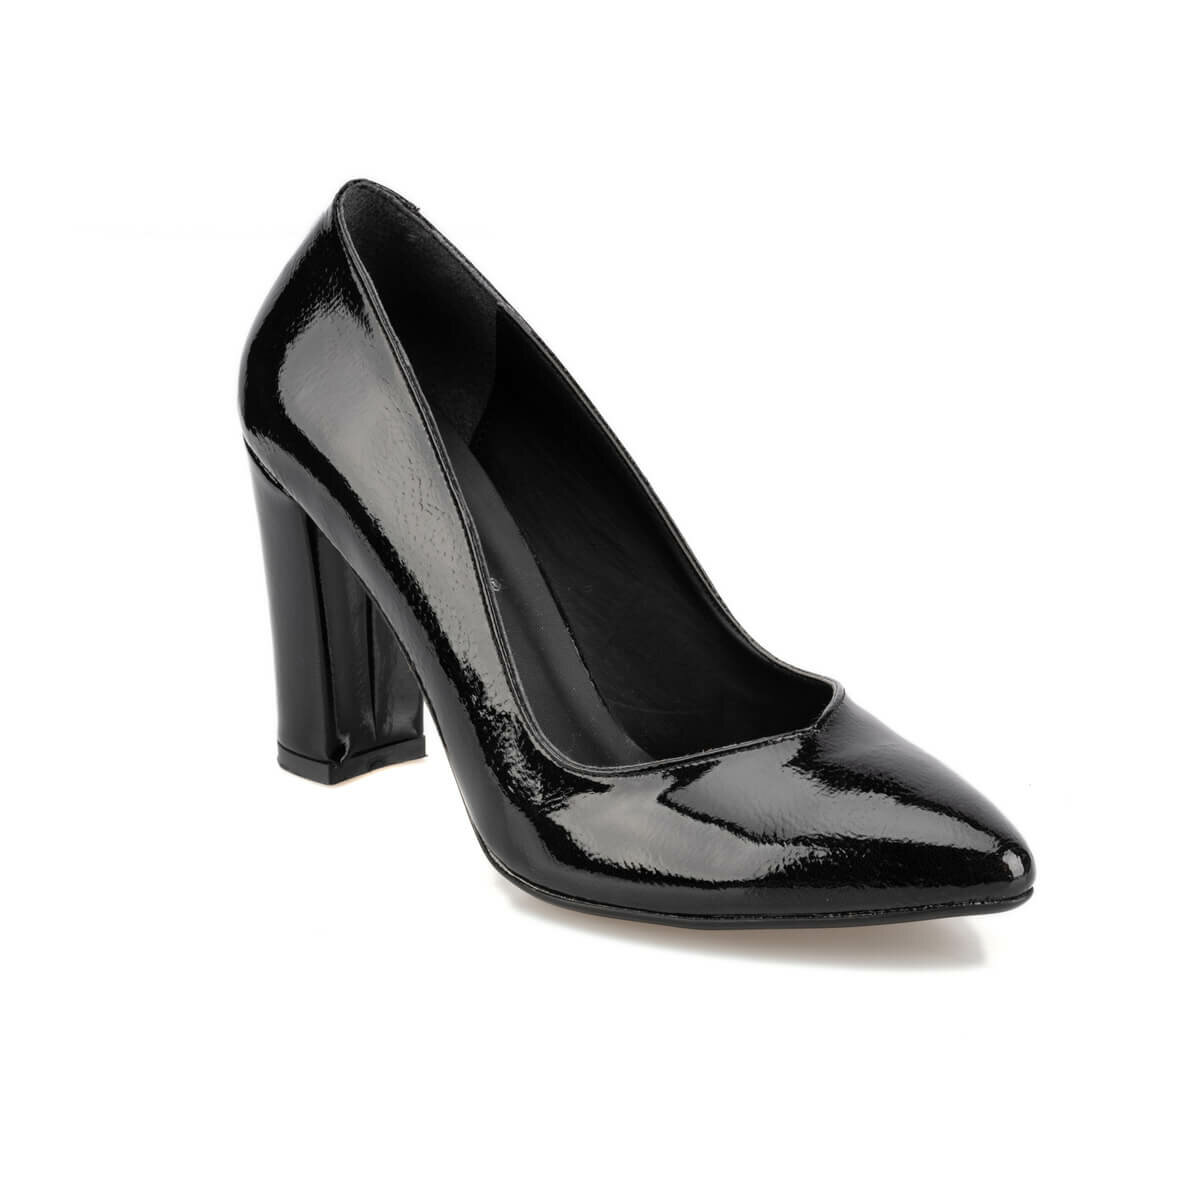 FLO 92.314086RZ Black Women Gova Shoes Polaris